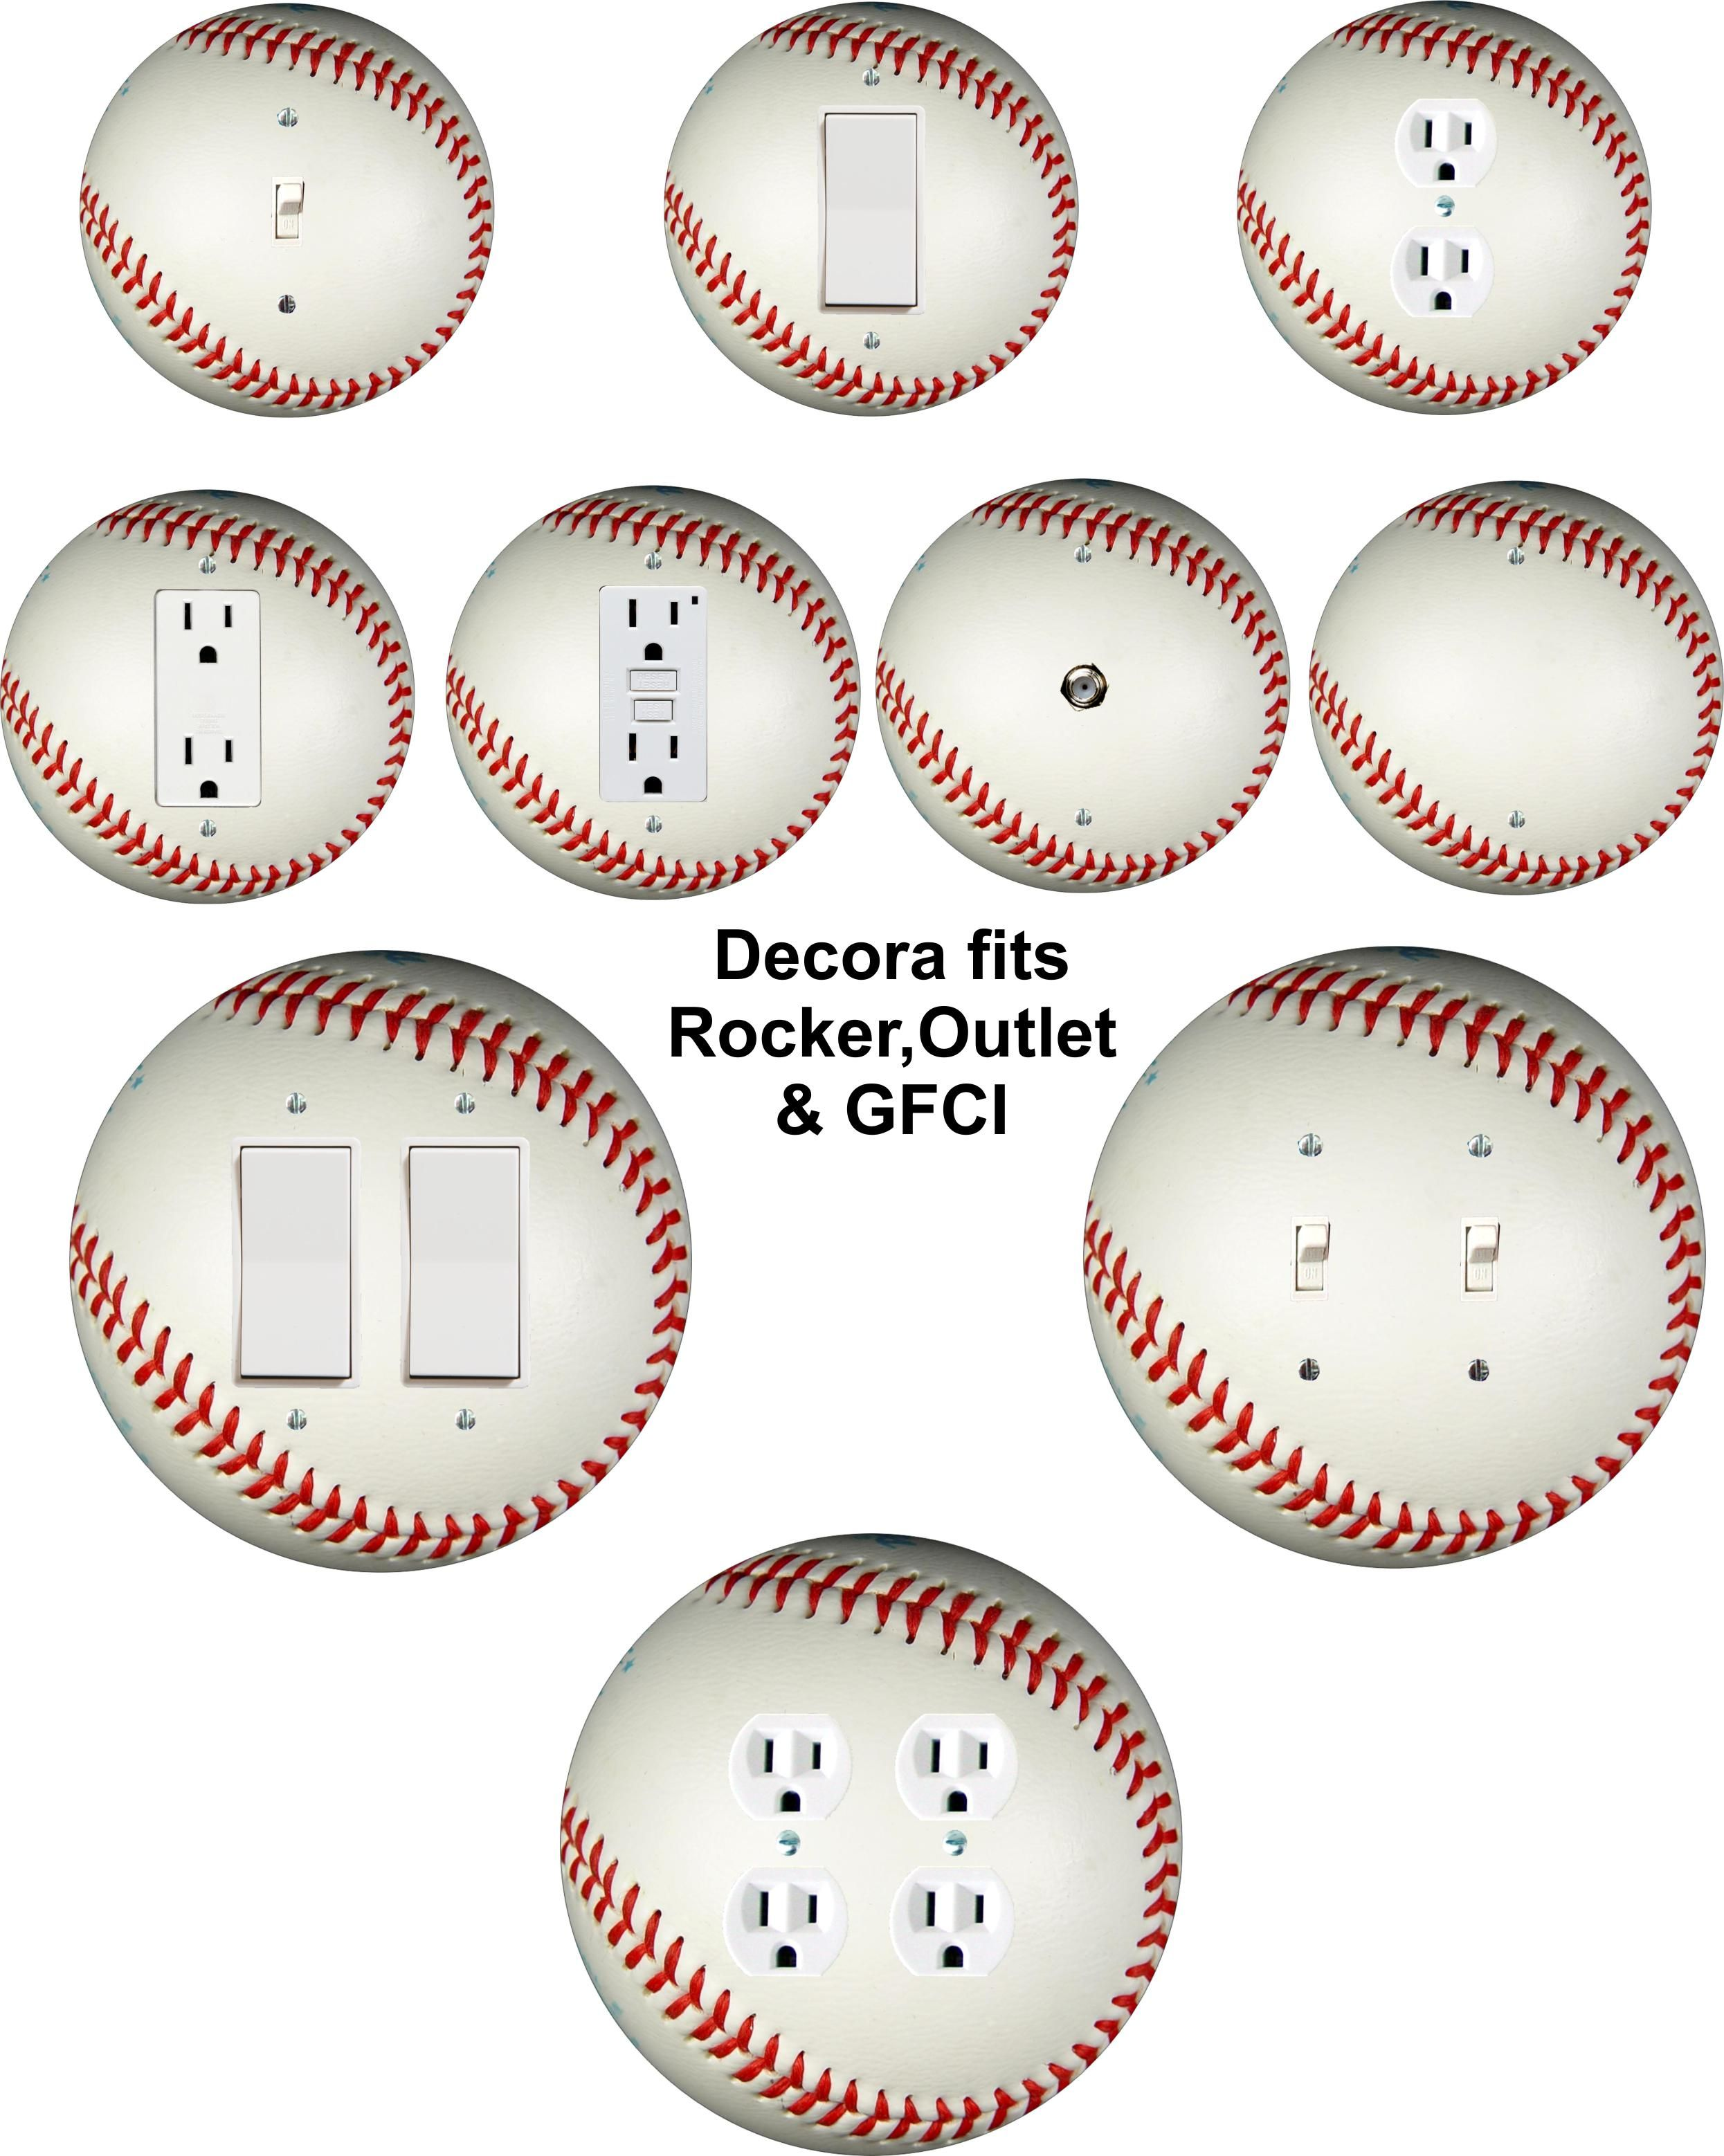 Baseball Themed Wall Plate Covers For Light Switch Toggle Duplex Outlet Decora